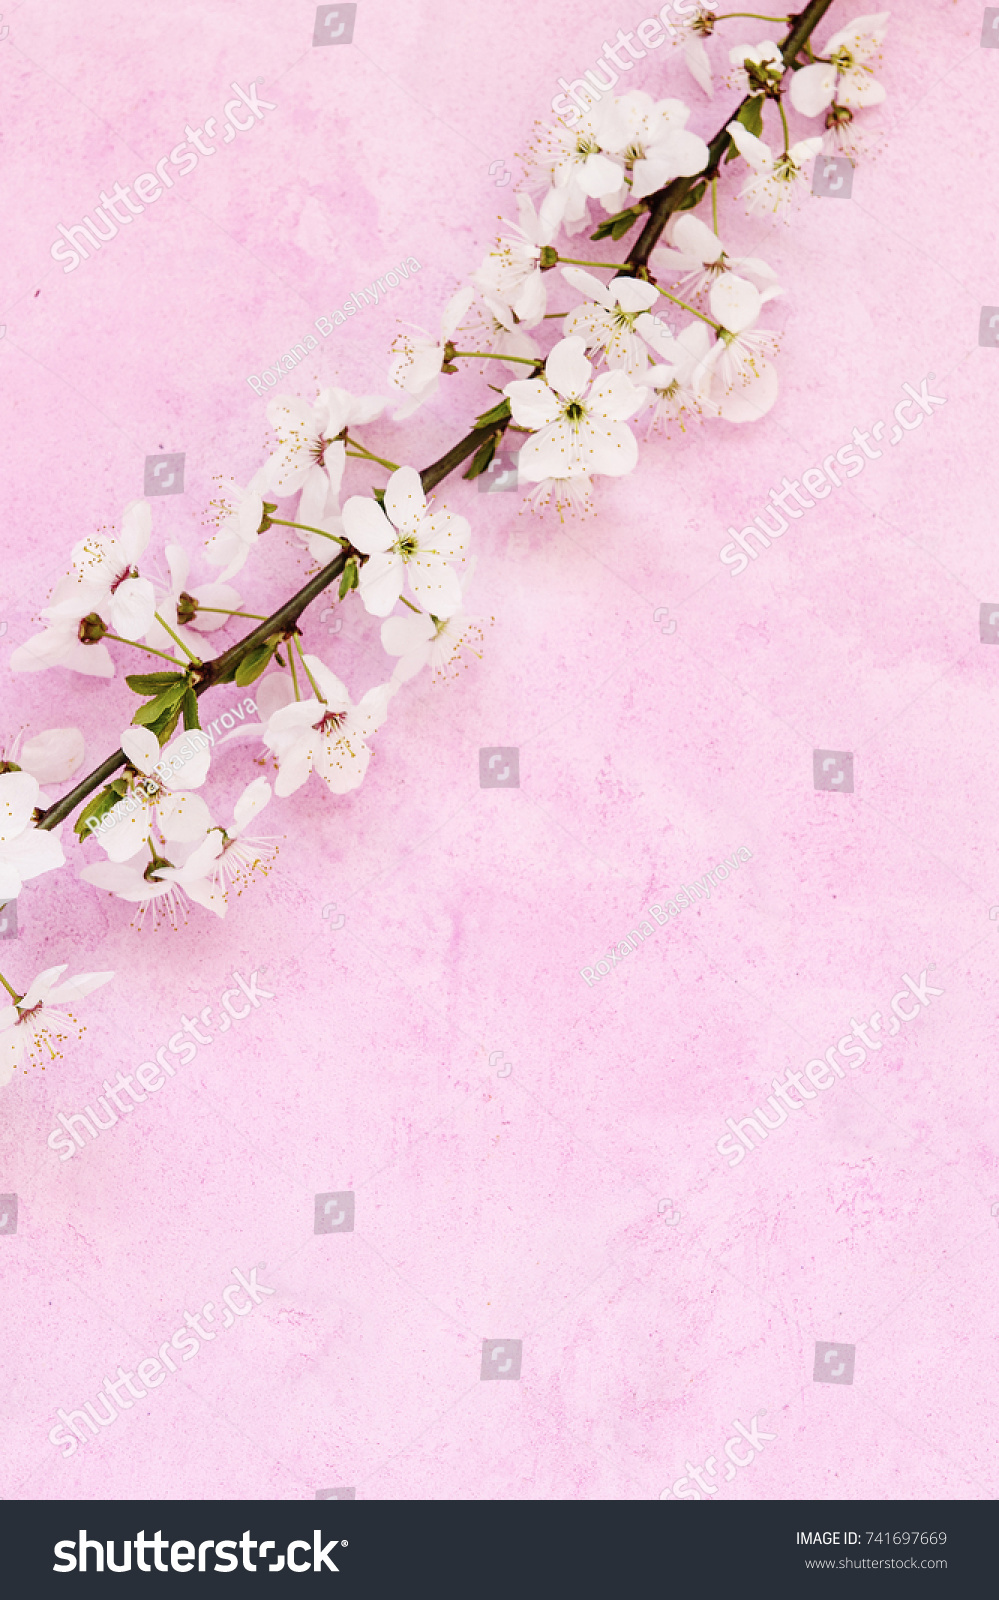 White Apricot Spring Flowers On Grunge Stock Photo Edit Now